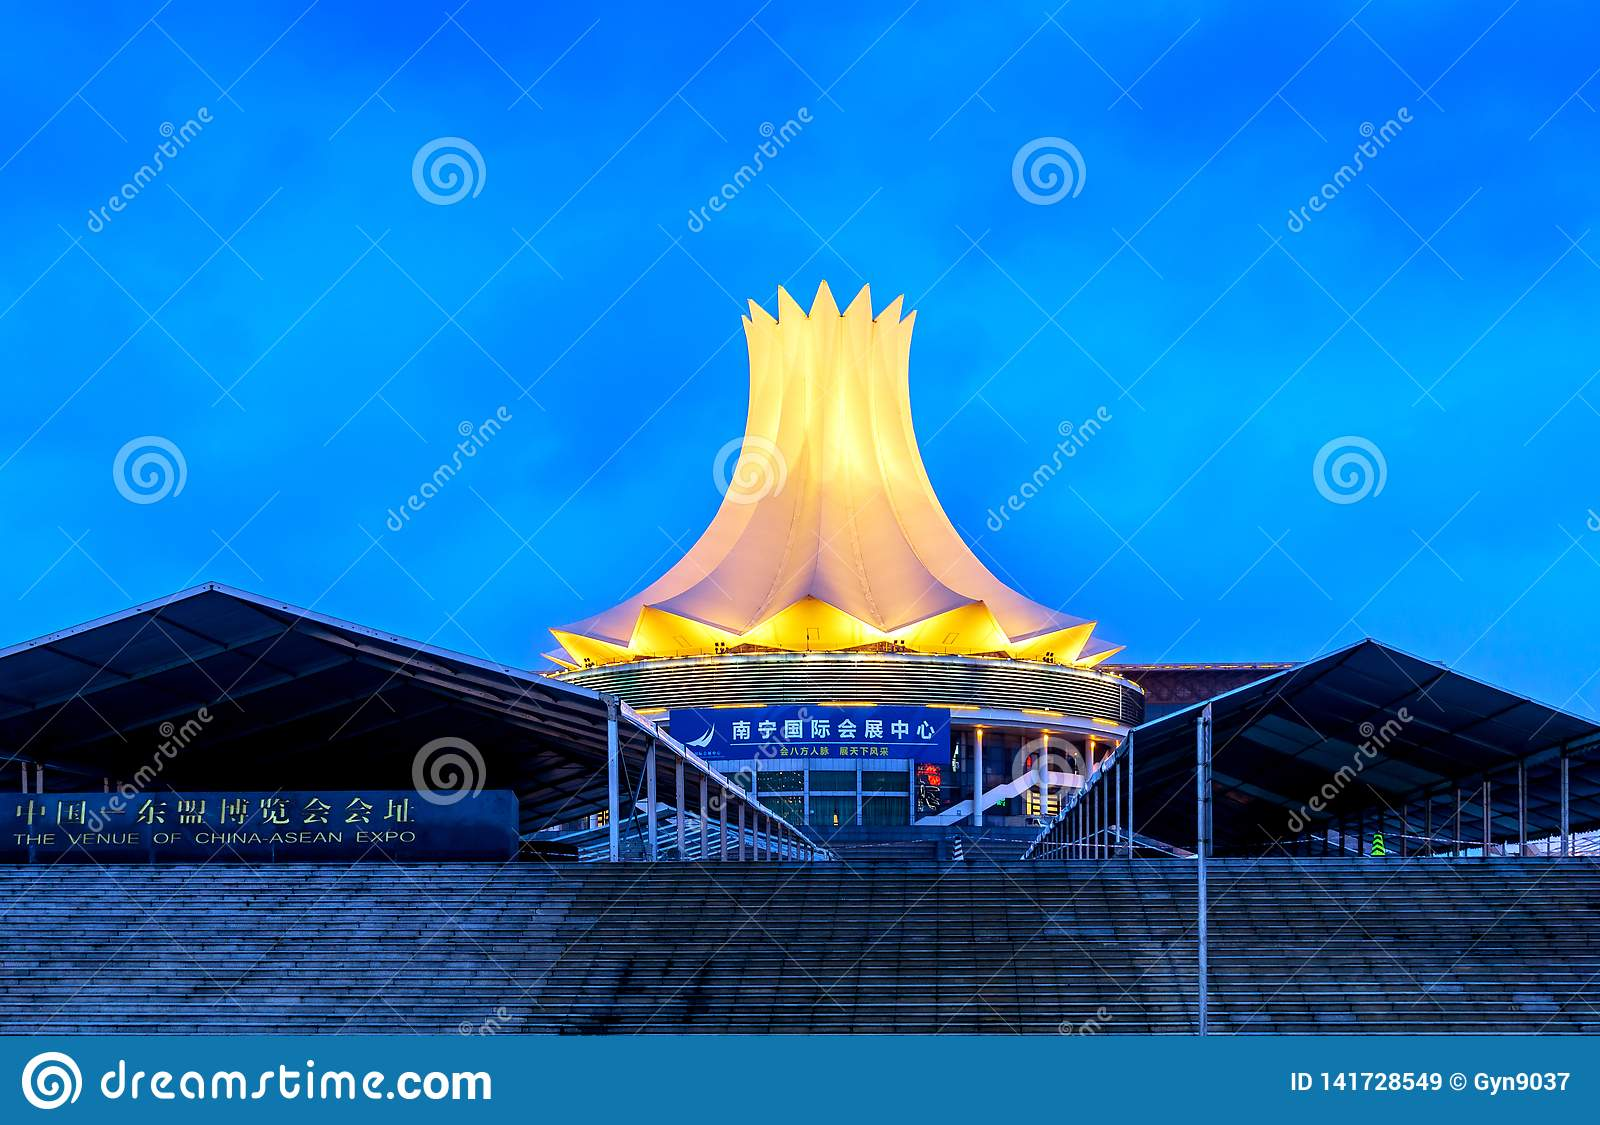 Nanning Convention and Exhibition Center